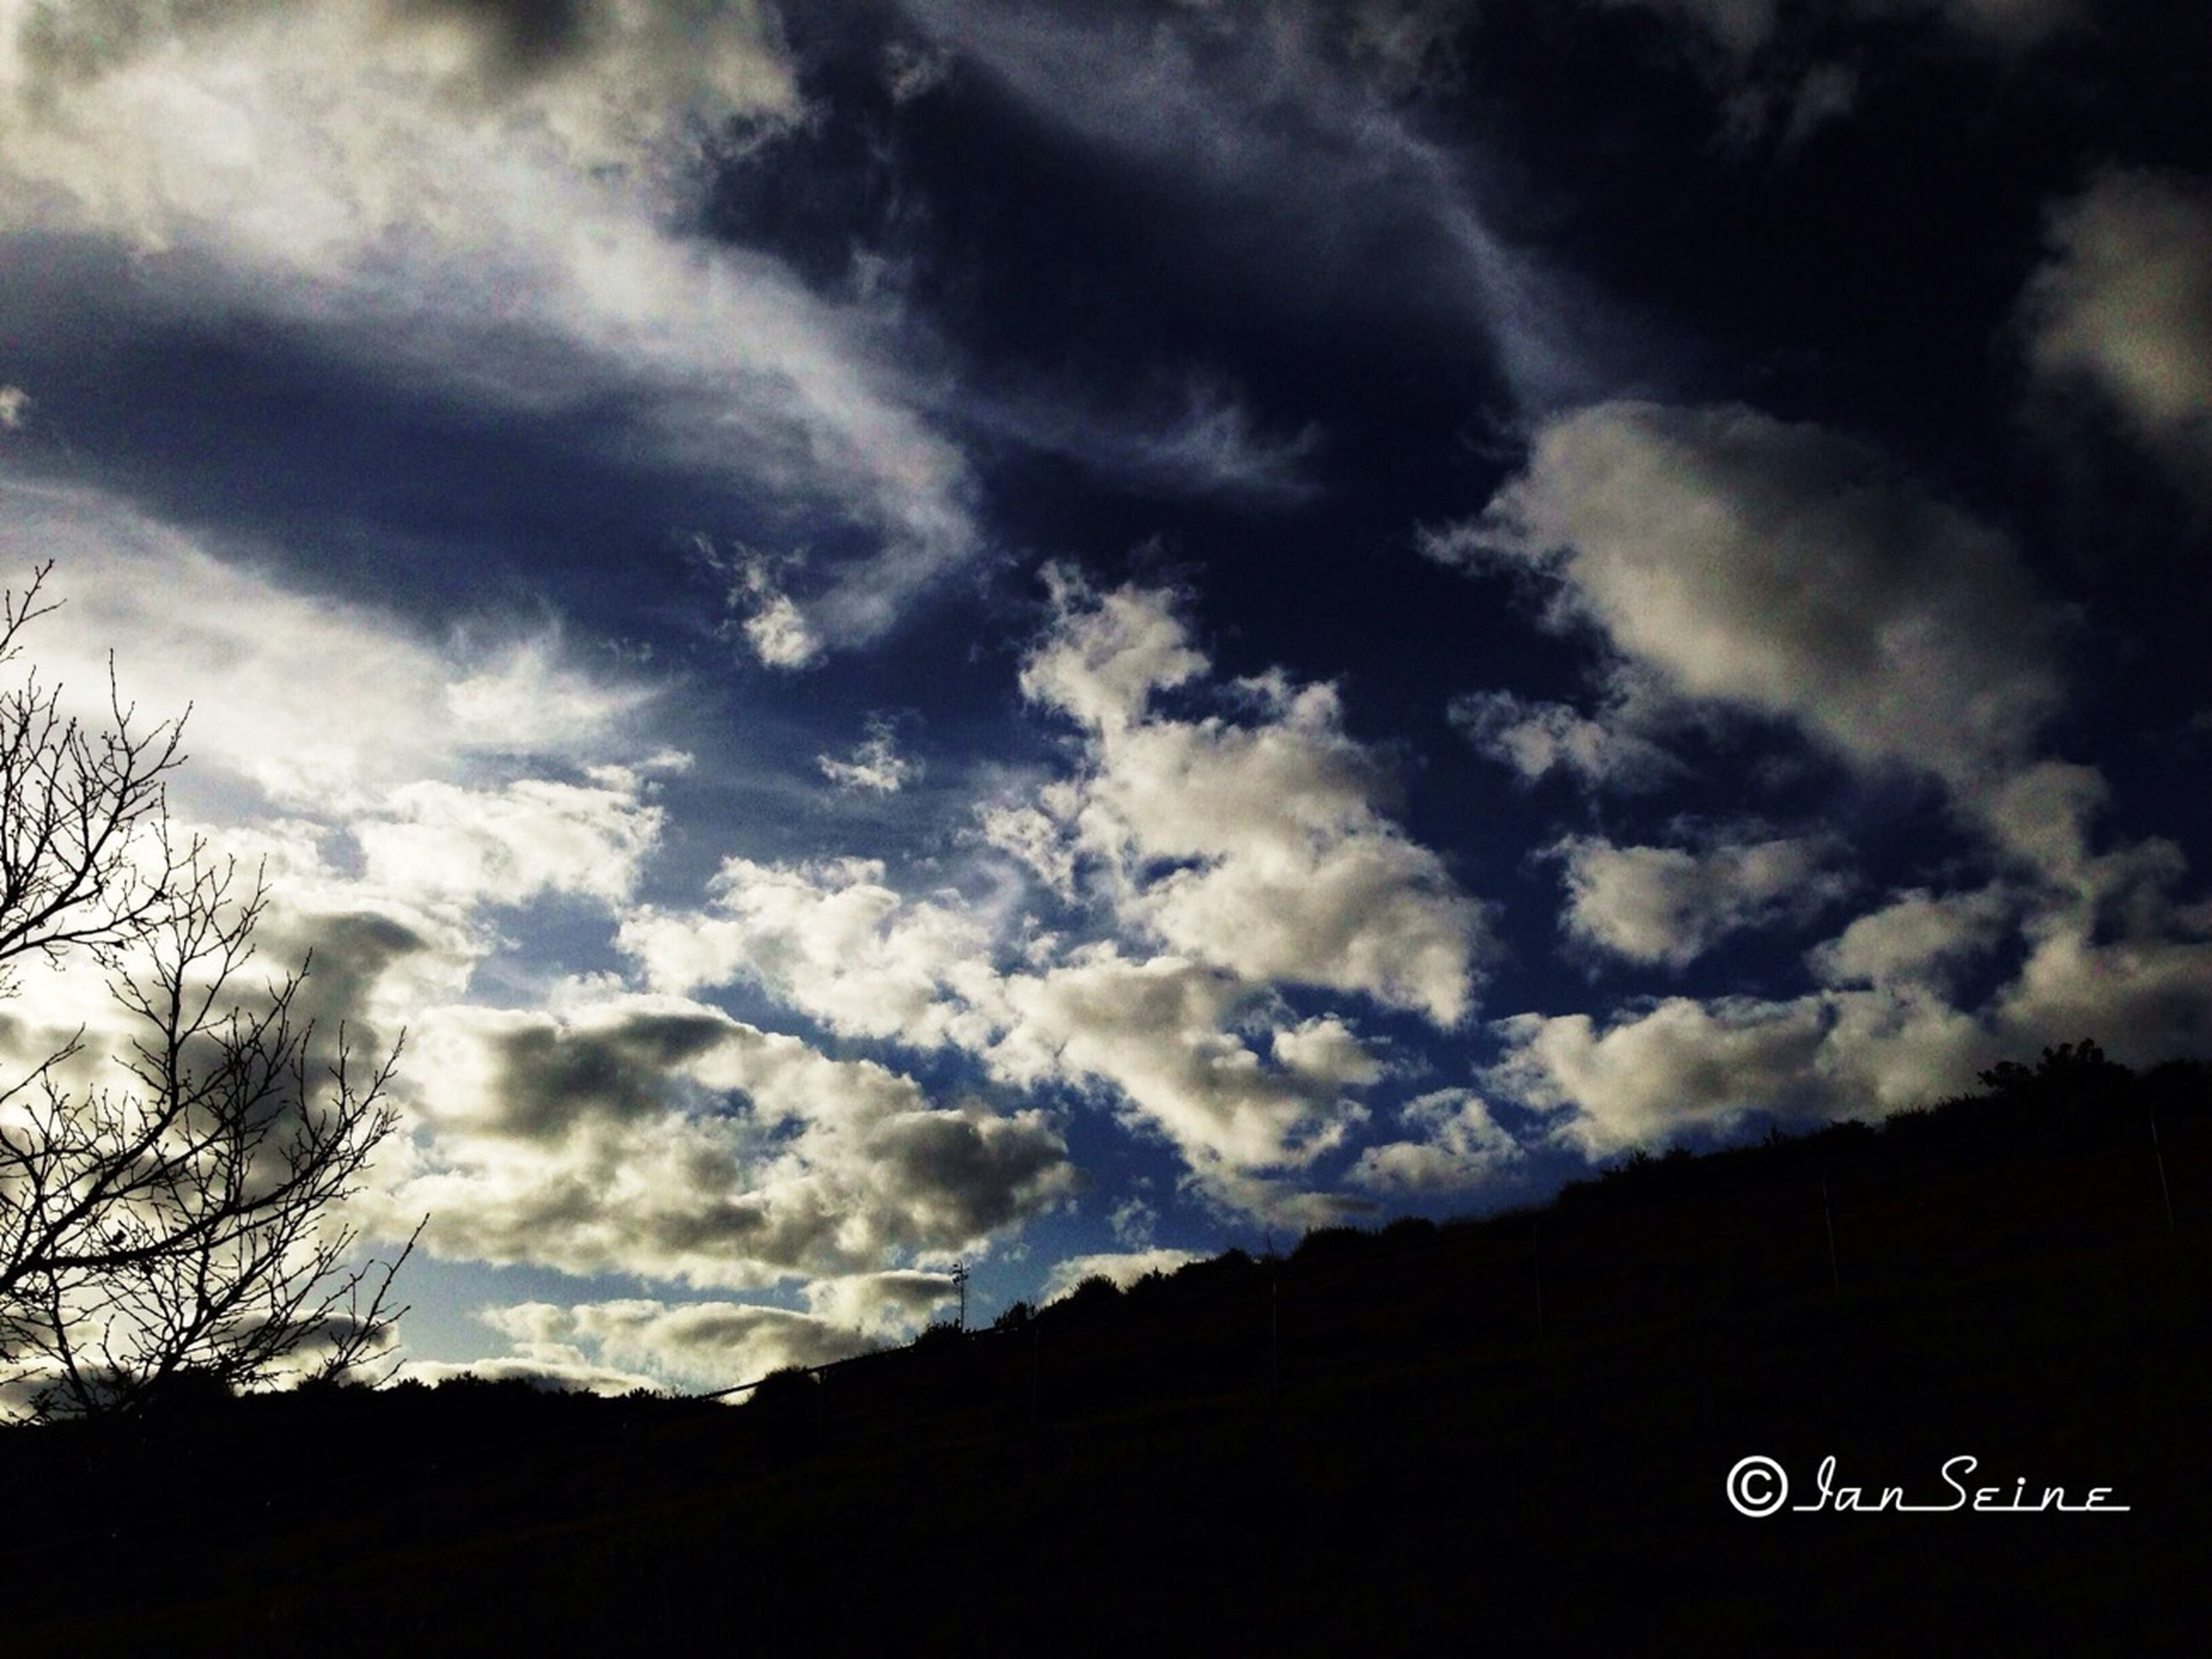 sky, cloud - sky, silhouette, cloudy, tranquility, tree, tranquil scene, scenics, cloud, beauty in nature, nature, landscape, text, low angle view, communication, western script, outdoors, no people, overcast, mountain